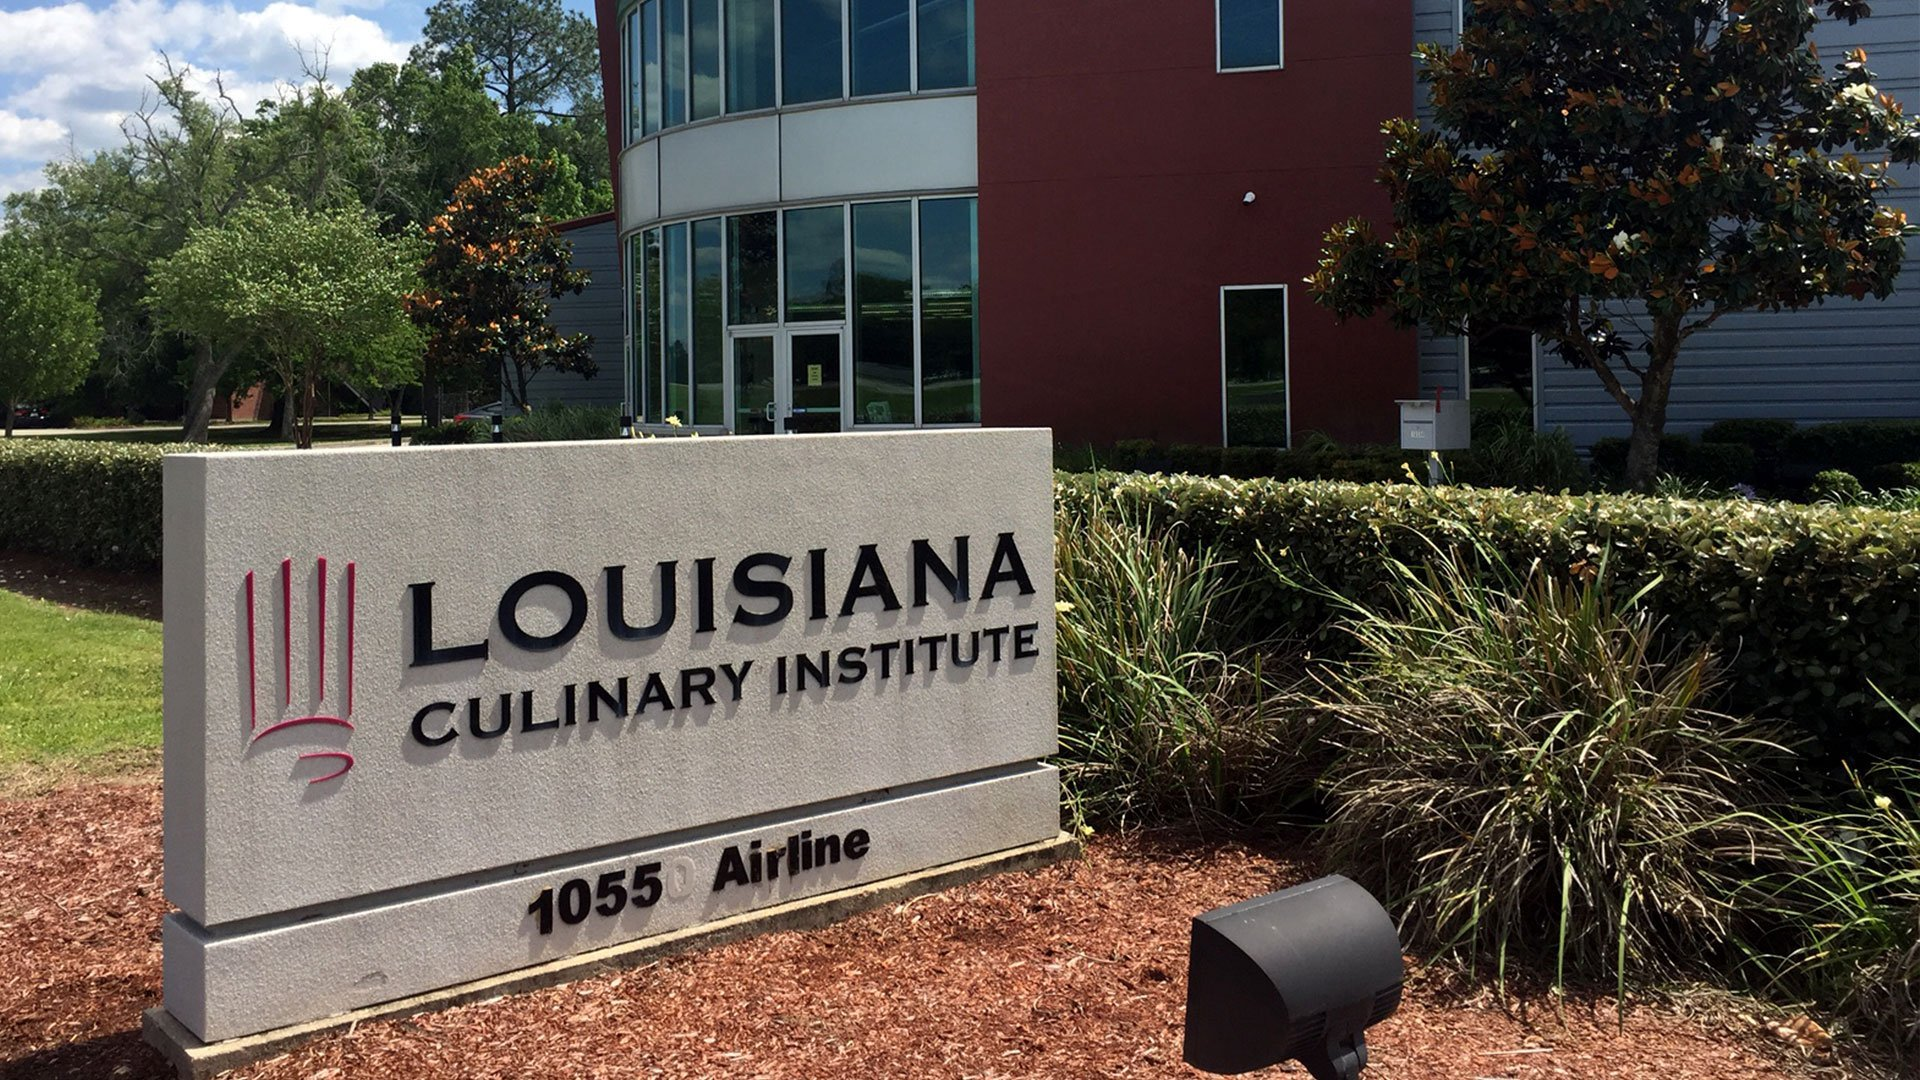 reasons for attending culinary school Attending culinary school can be an expensive proposition tuition is costly, and just like with any other higher education institution, culinary school comes with added expenses such as room and board, books, and more.